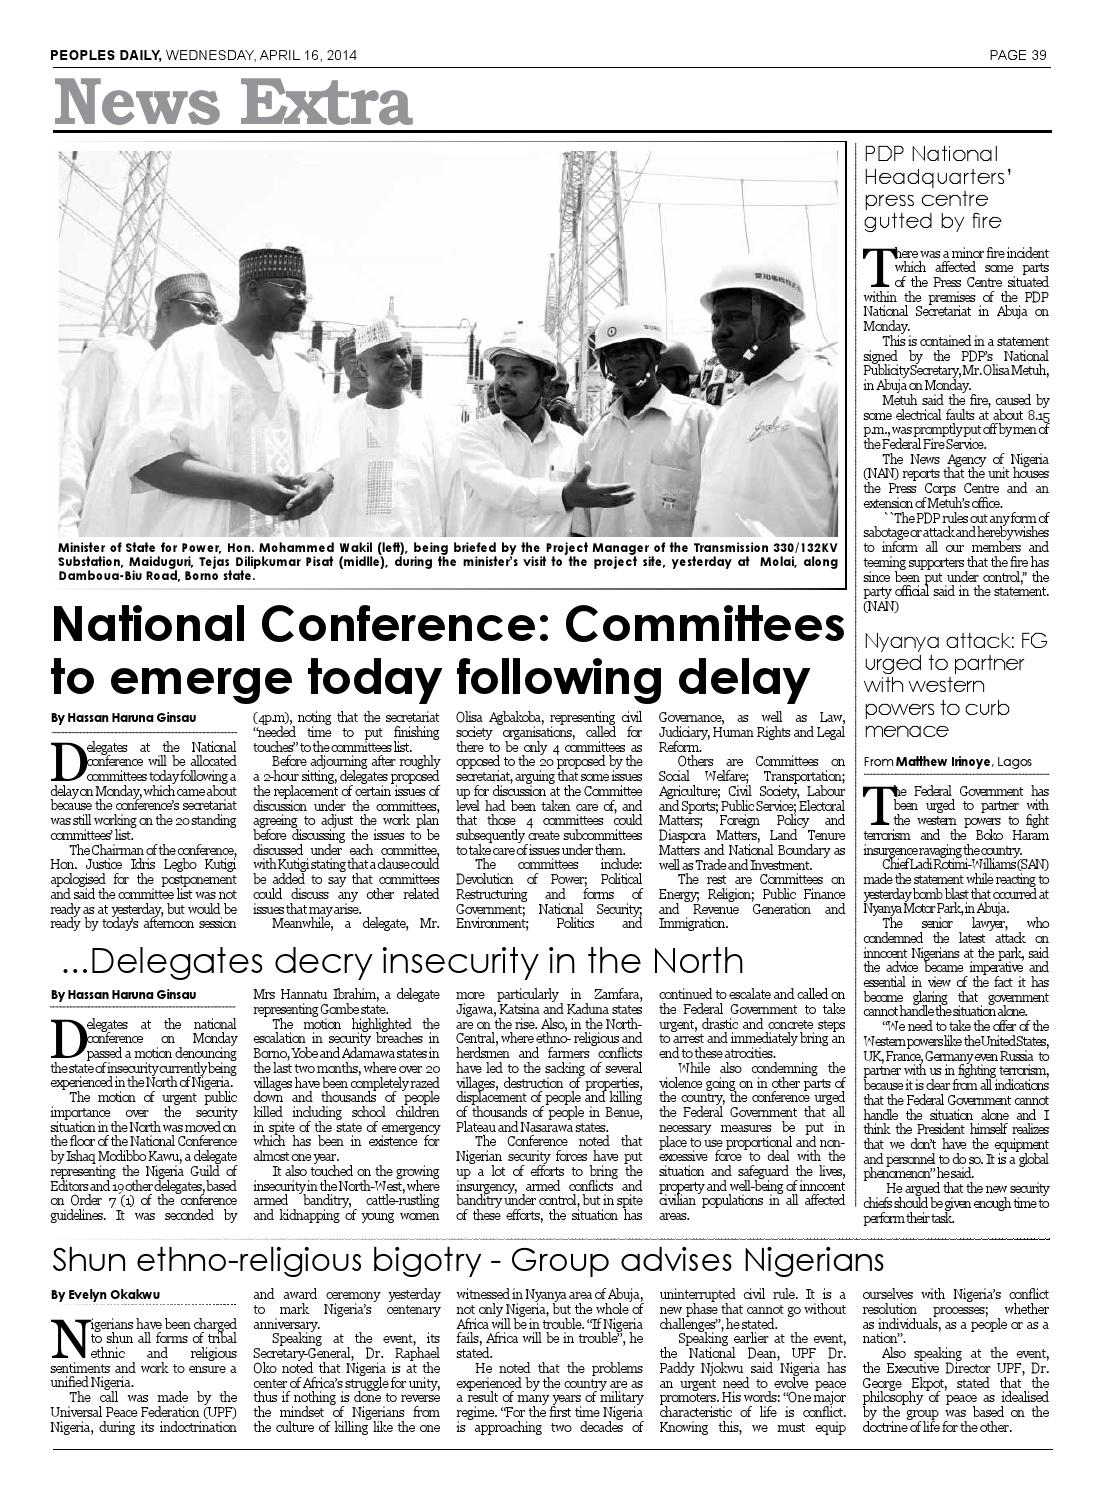 Wednesday 16th April, 2014 Edition by Peoples Media Limited